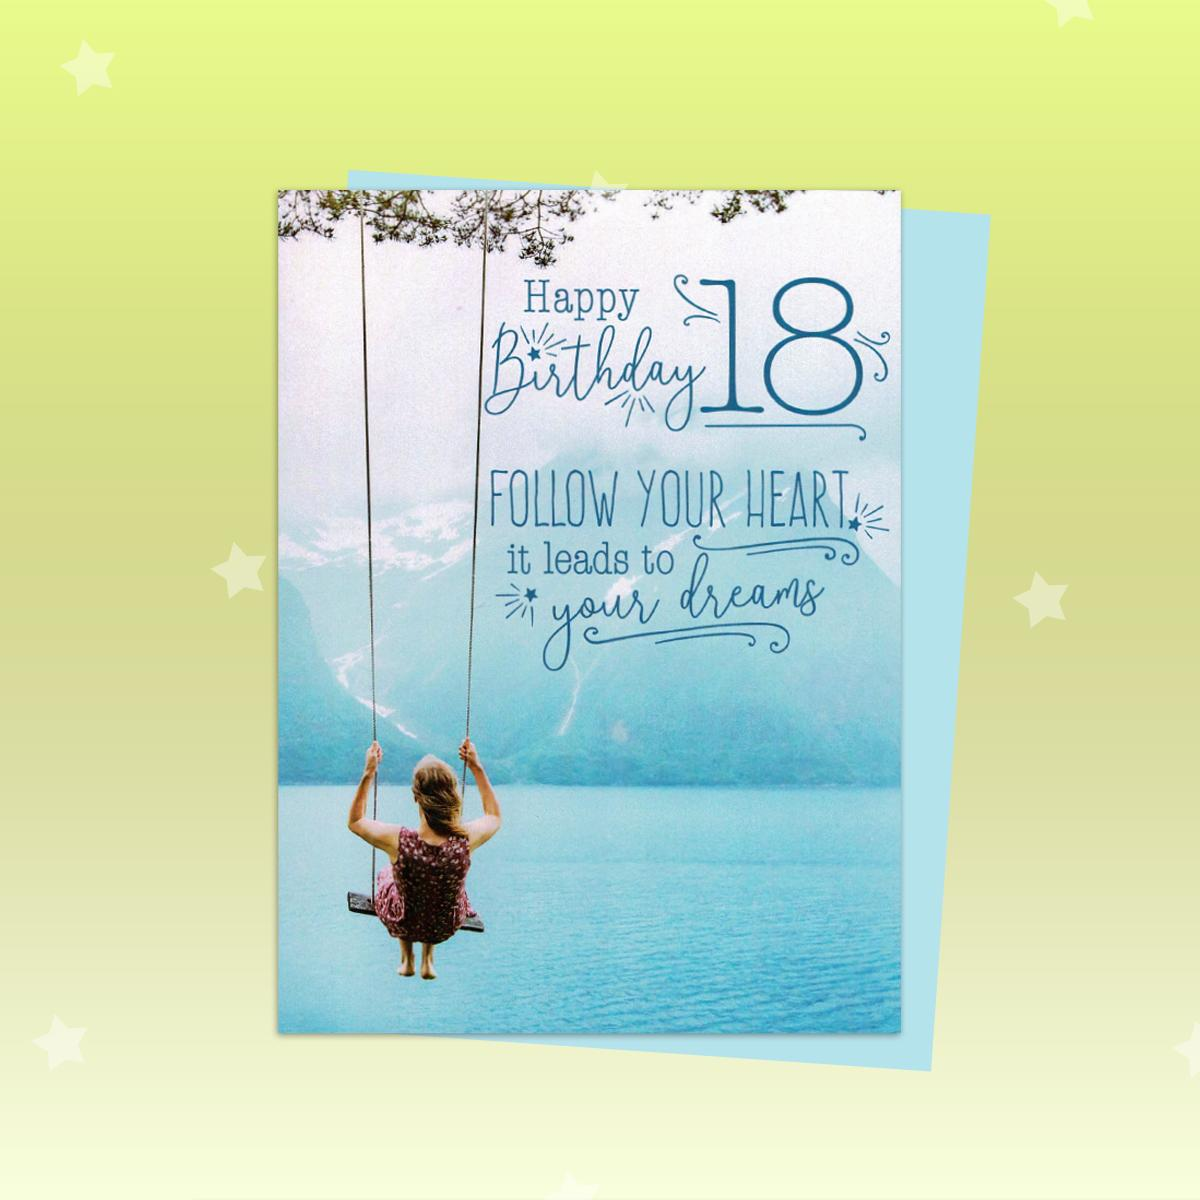 18th Follow Your Heart Birthday Card Alongside Its Light Blue Envelope